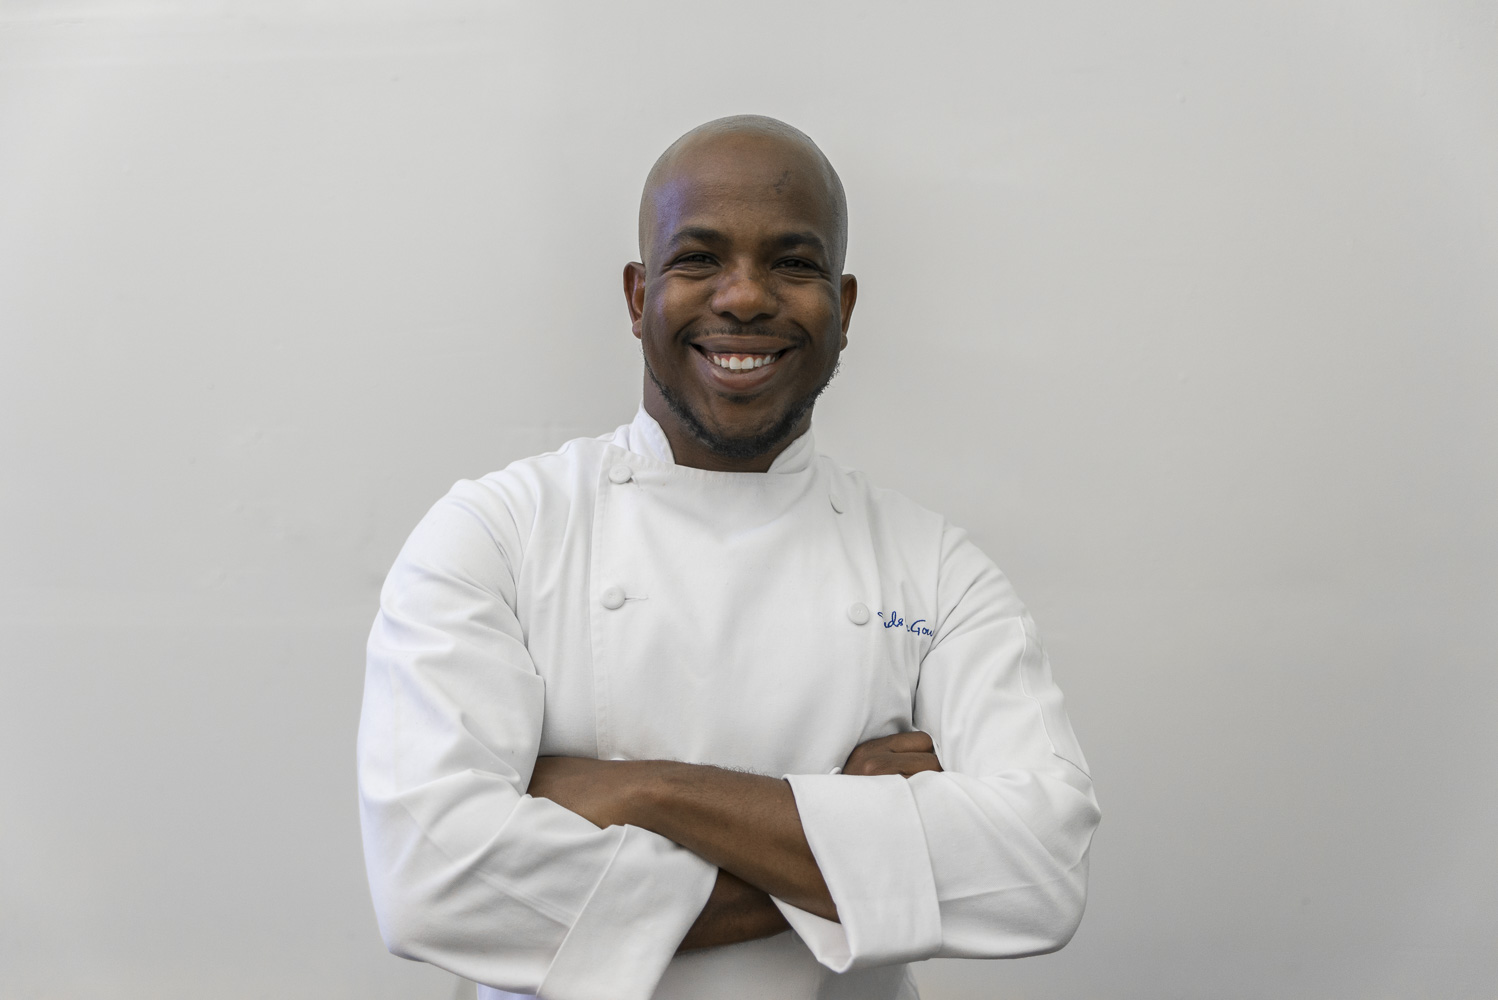 Chef Green With Cozymeal